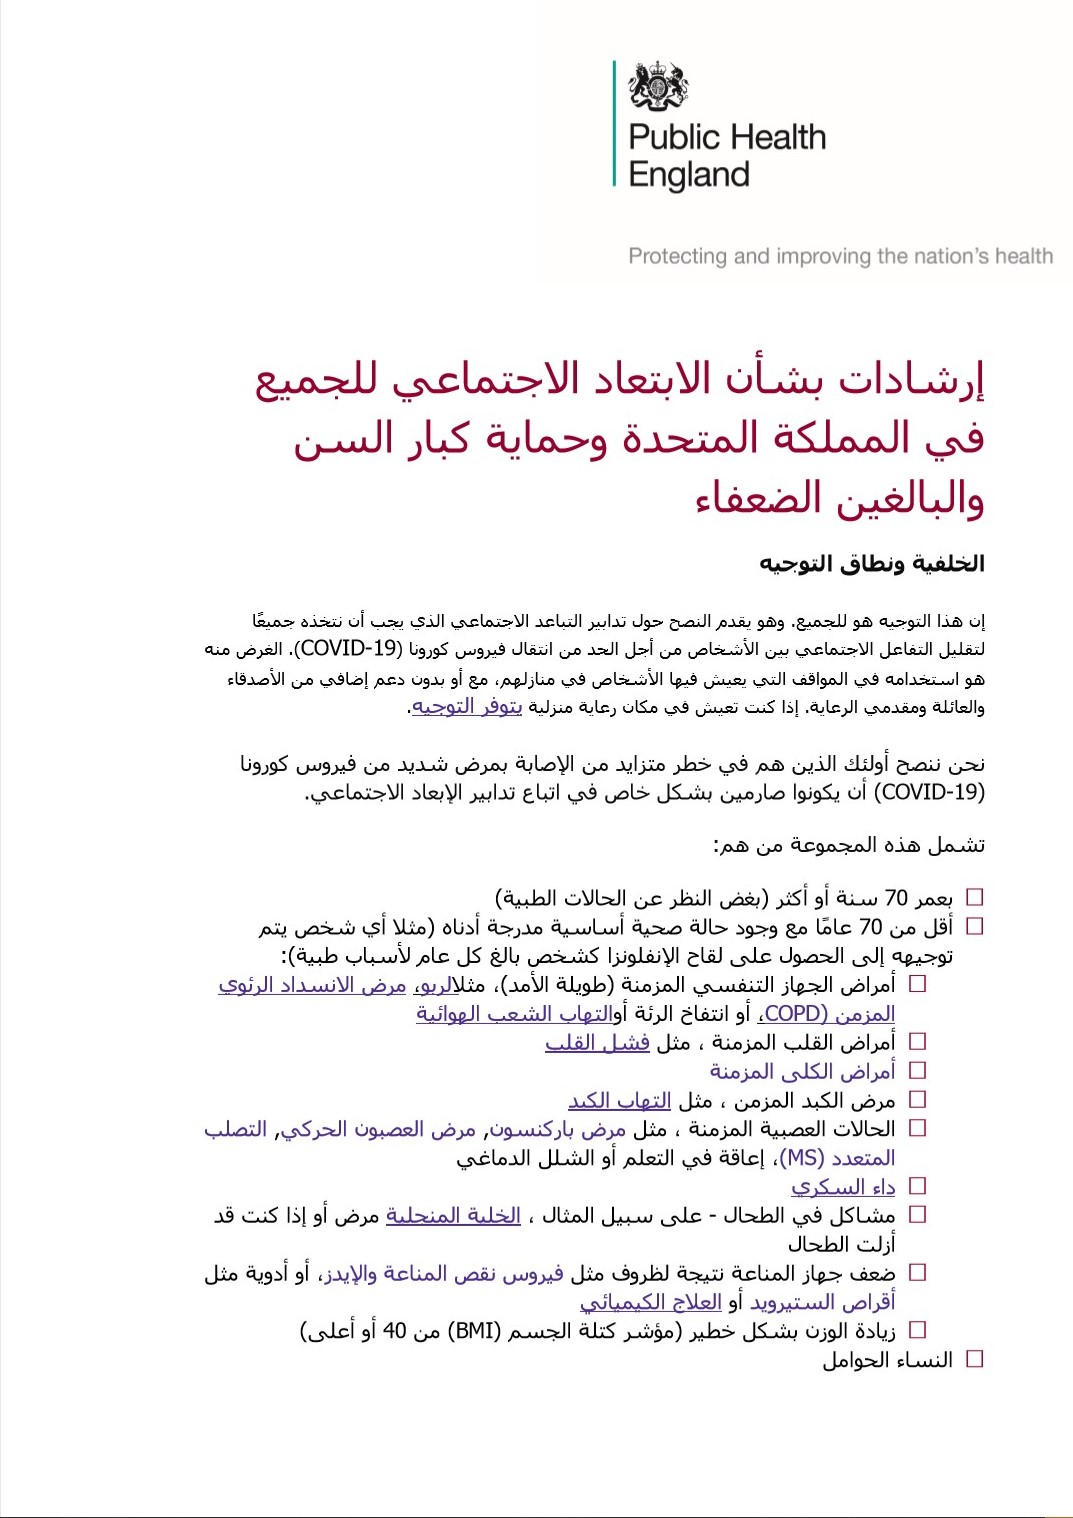 Arabic language guidance from the UK Government on coronavirus. Social distancing and protecting older people and vulnerable adults.